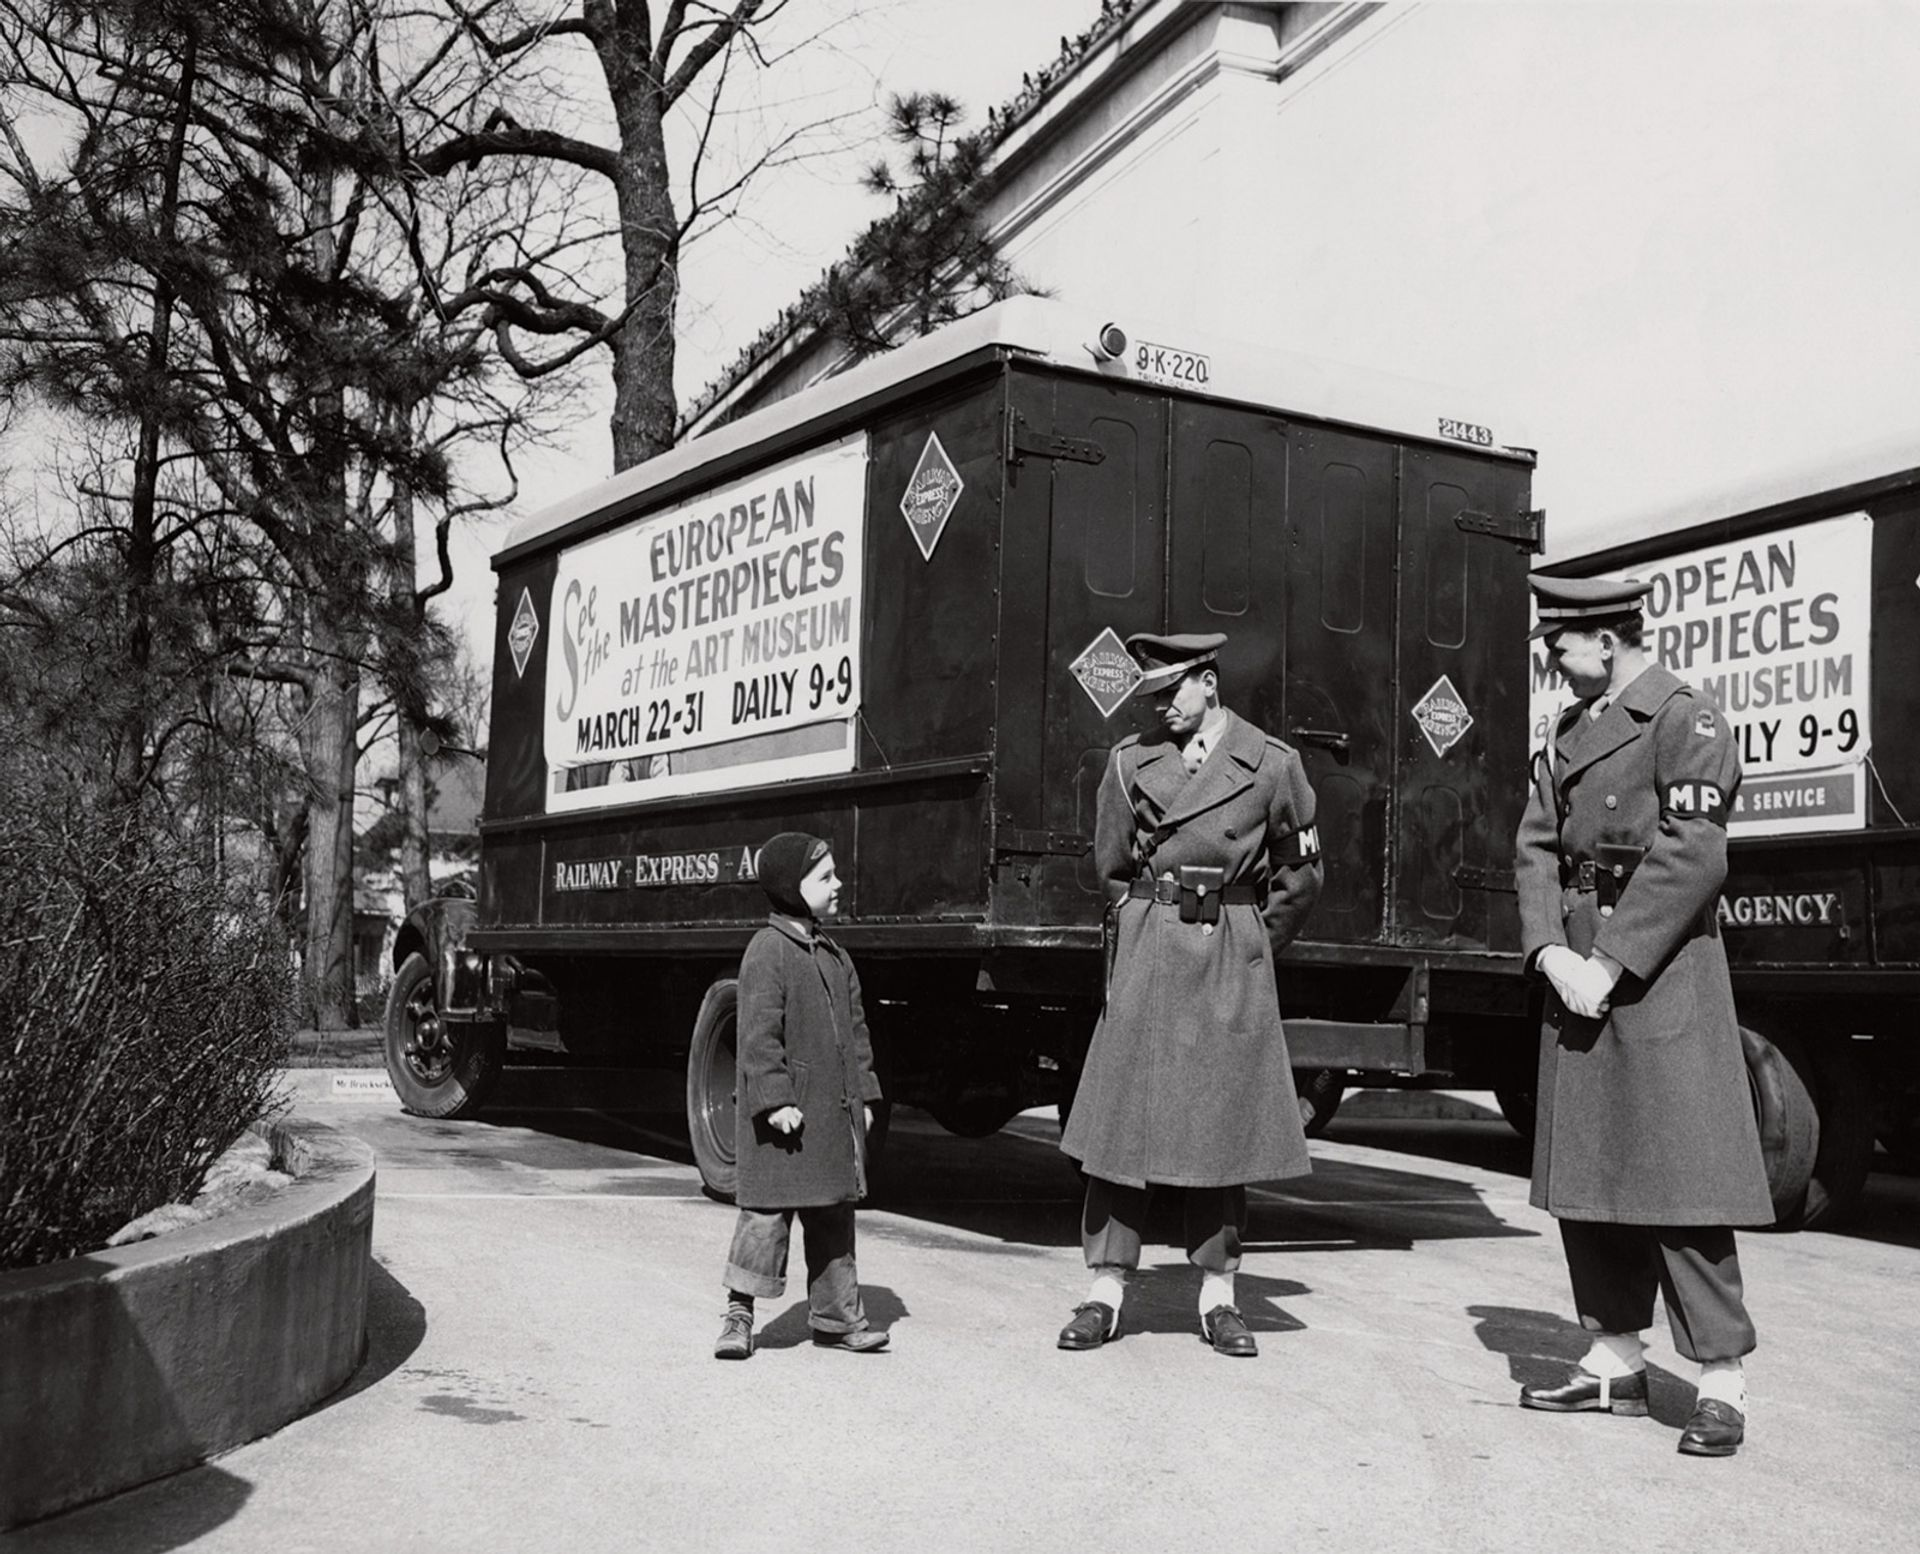 Trucks guarded by the US military brought the Berlin Old Masters to Toledo, Ohio in 1949 Courtesy of Cincinnati Art Museum